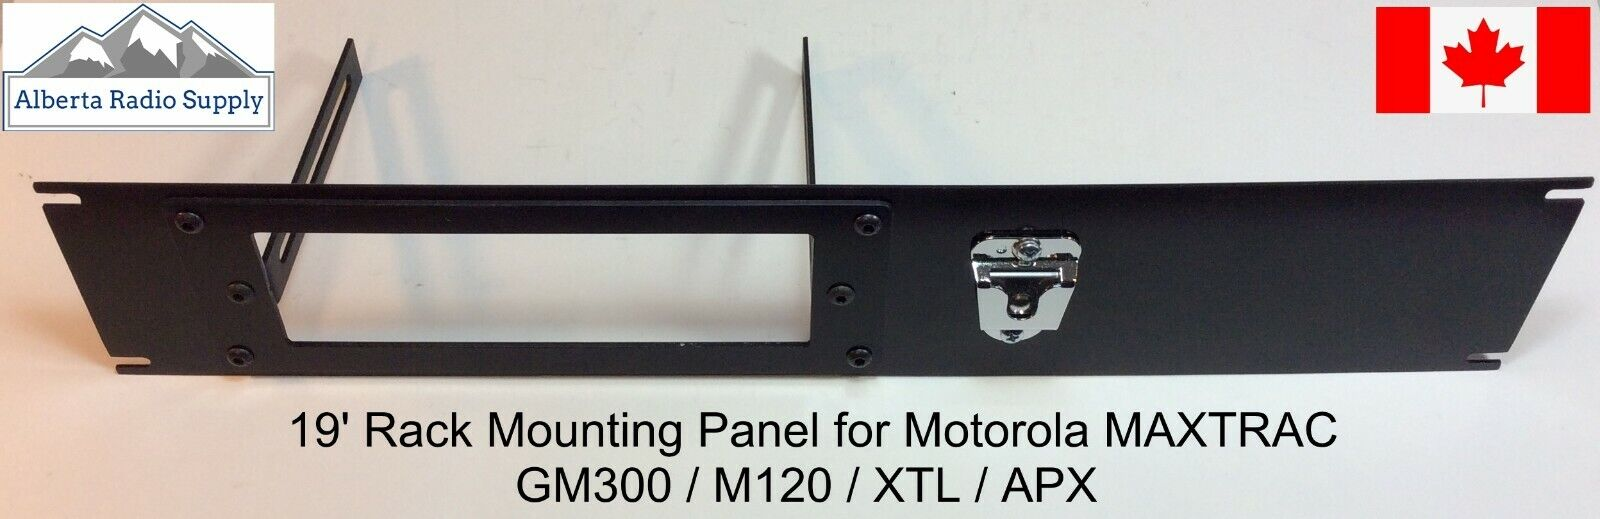 """19"""" Rack Mount Panel for Motorola XTL2500 XTL5000 APX SPECTRA MAXTRAC GM300. Buy it now for 60.01"""